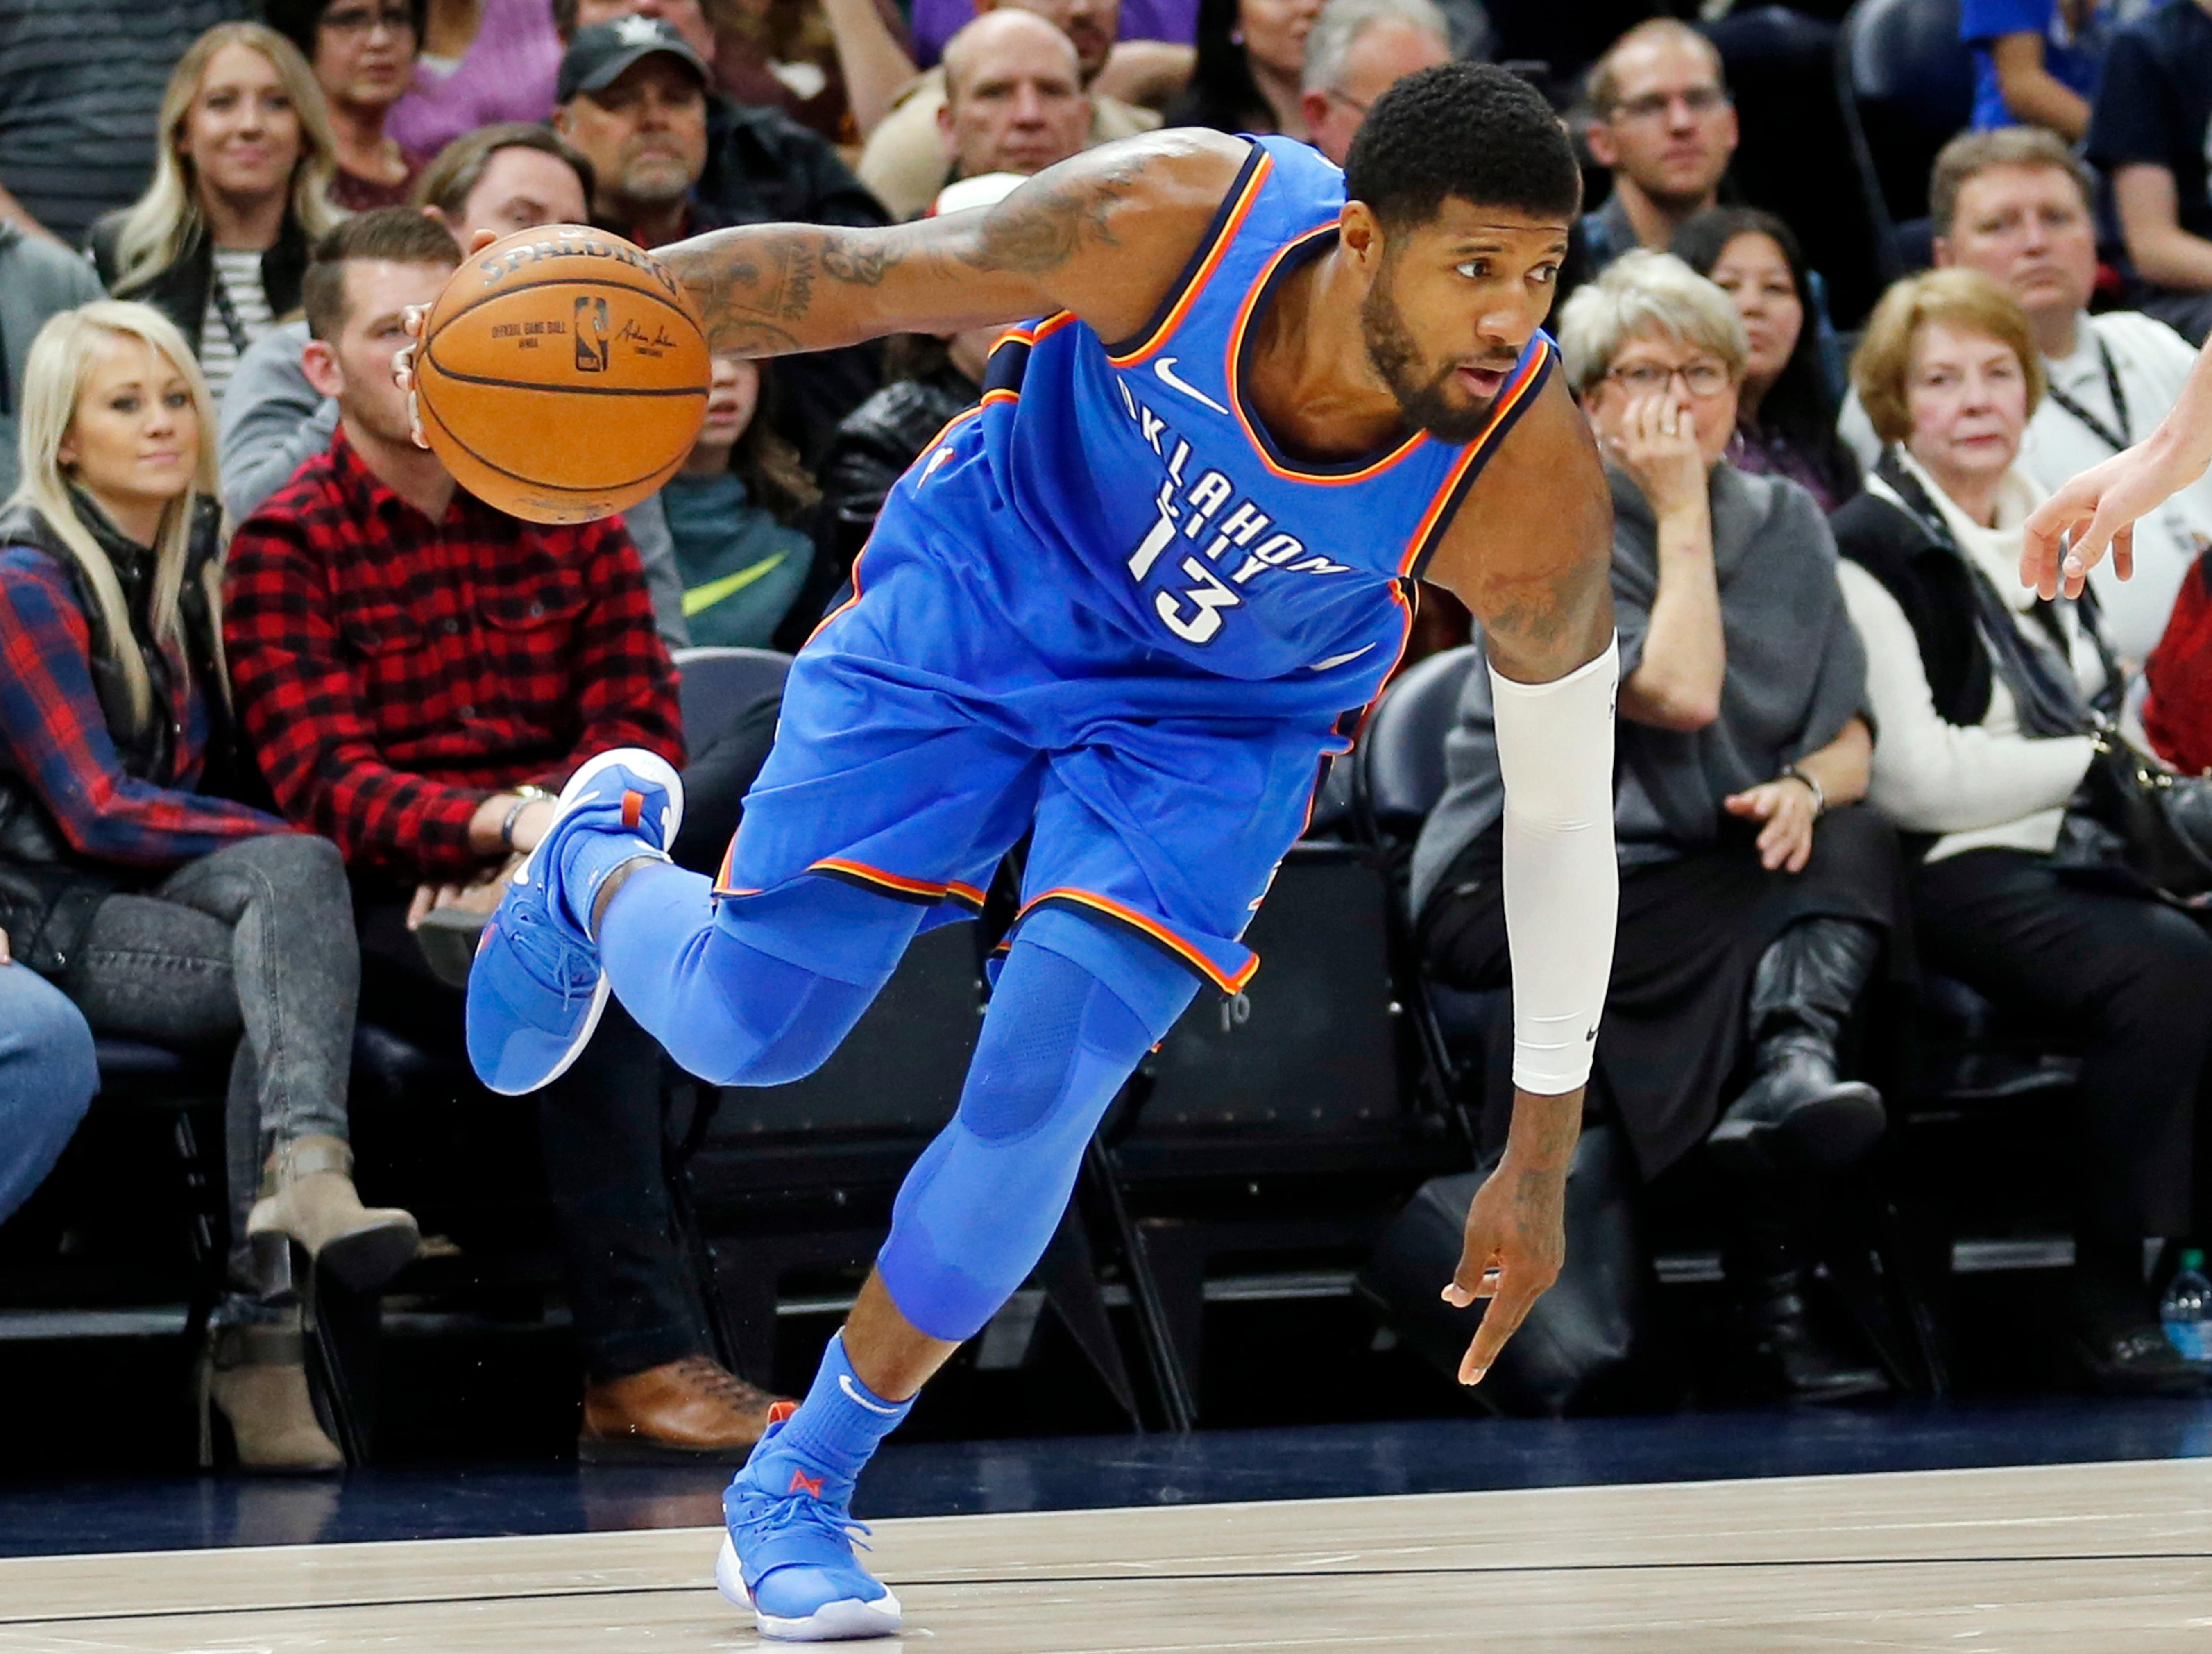 Oklahoma City Thunder forward Paul George (13) drives against the Utah Jazz in the first half during an NBA basketball game Saturday, Dec. 23, 2017, in Salt Lake City. (AP Photo/Rick Bowmer)